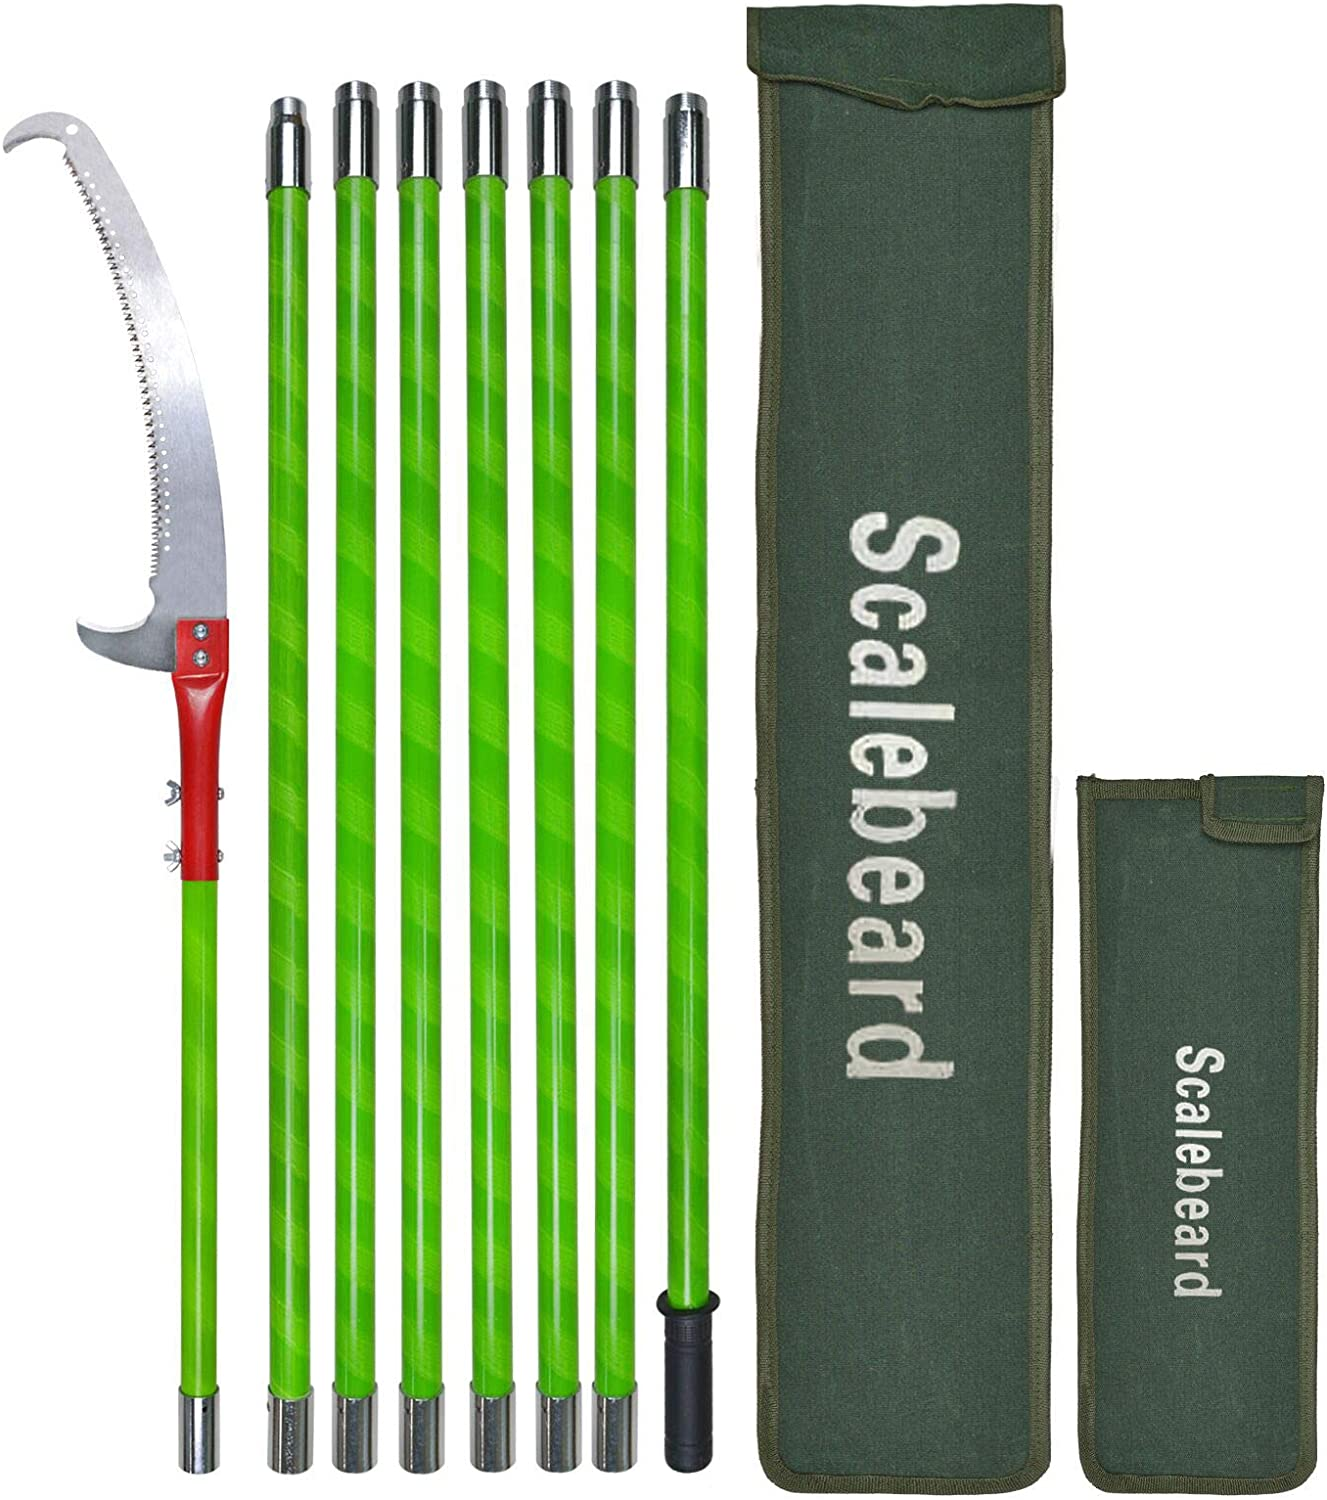 Scalebeard 26 Foot Tree Trimmer Pole Manual Pruner Cutter Set Extension Cut Tree Branch Garden Tools Loppers Hand Pole Saws(B)